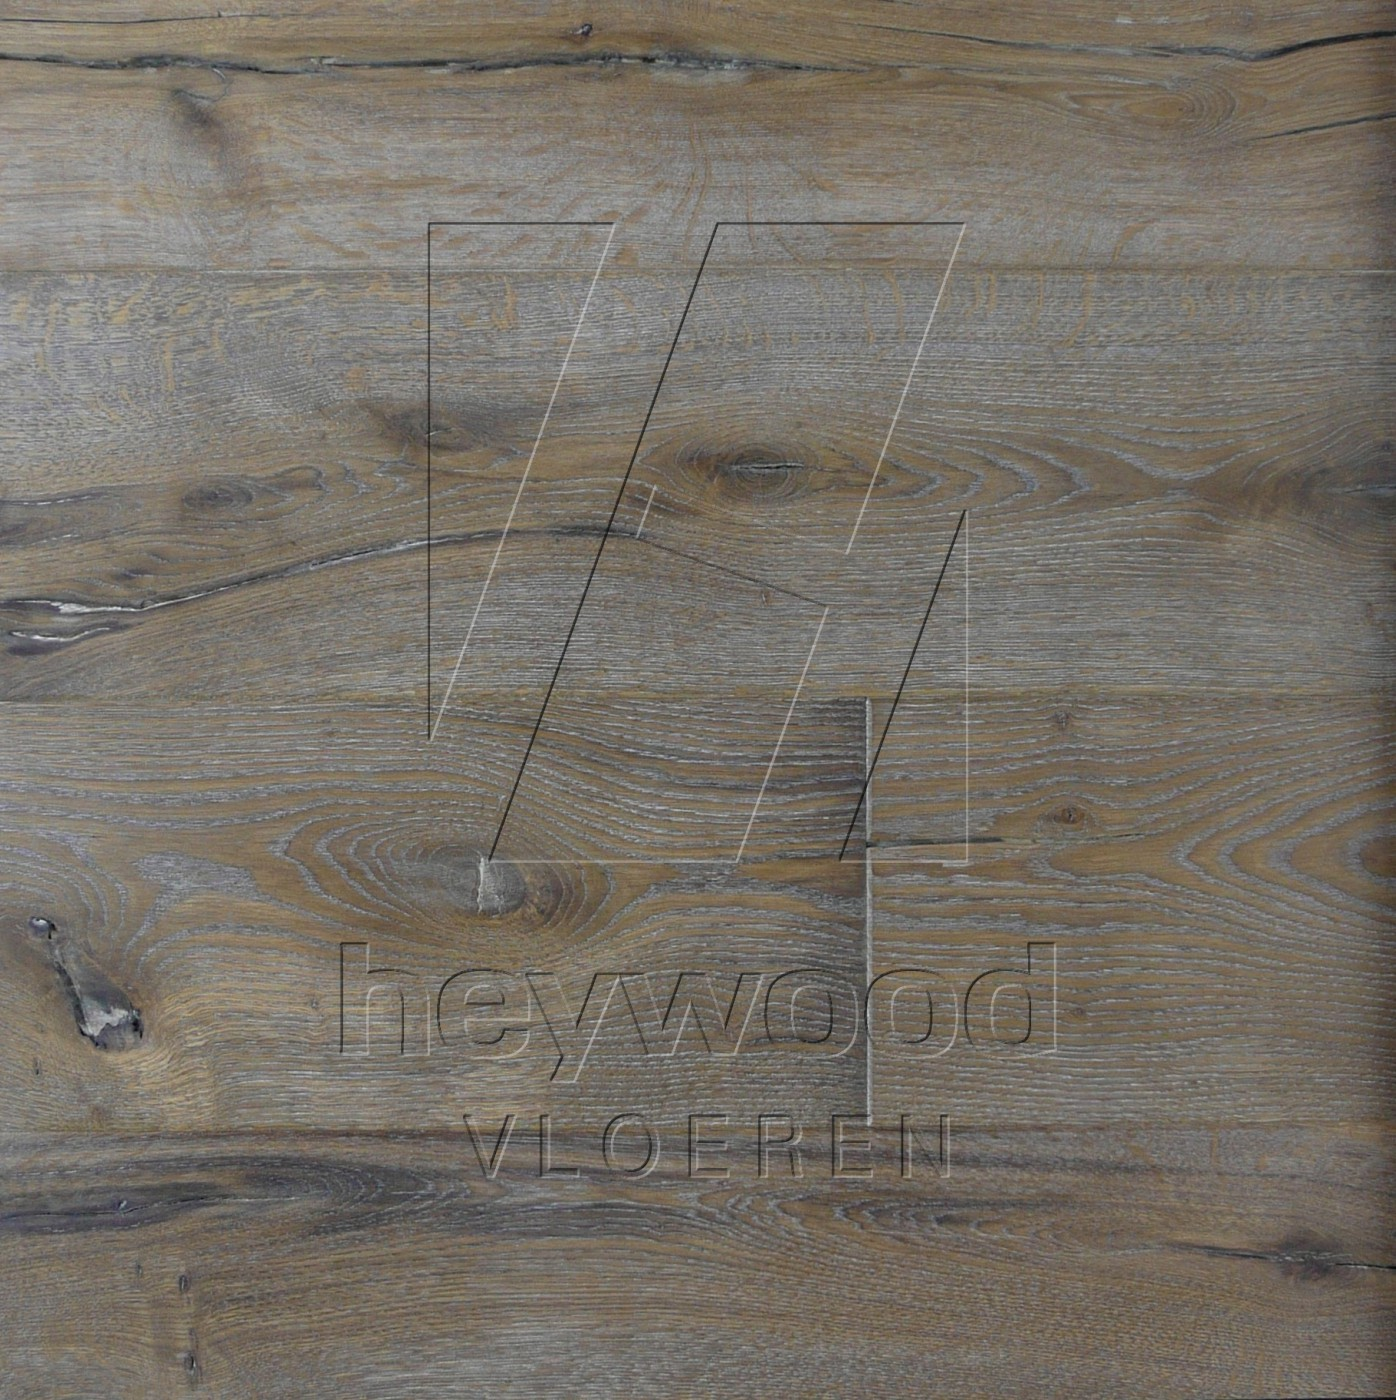 Karakoram in Aged Antique Surface of Aged Hardwood Floors